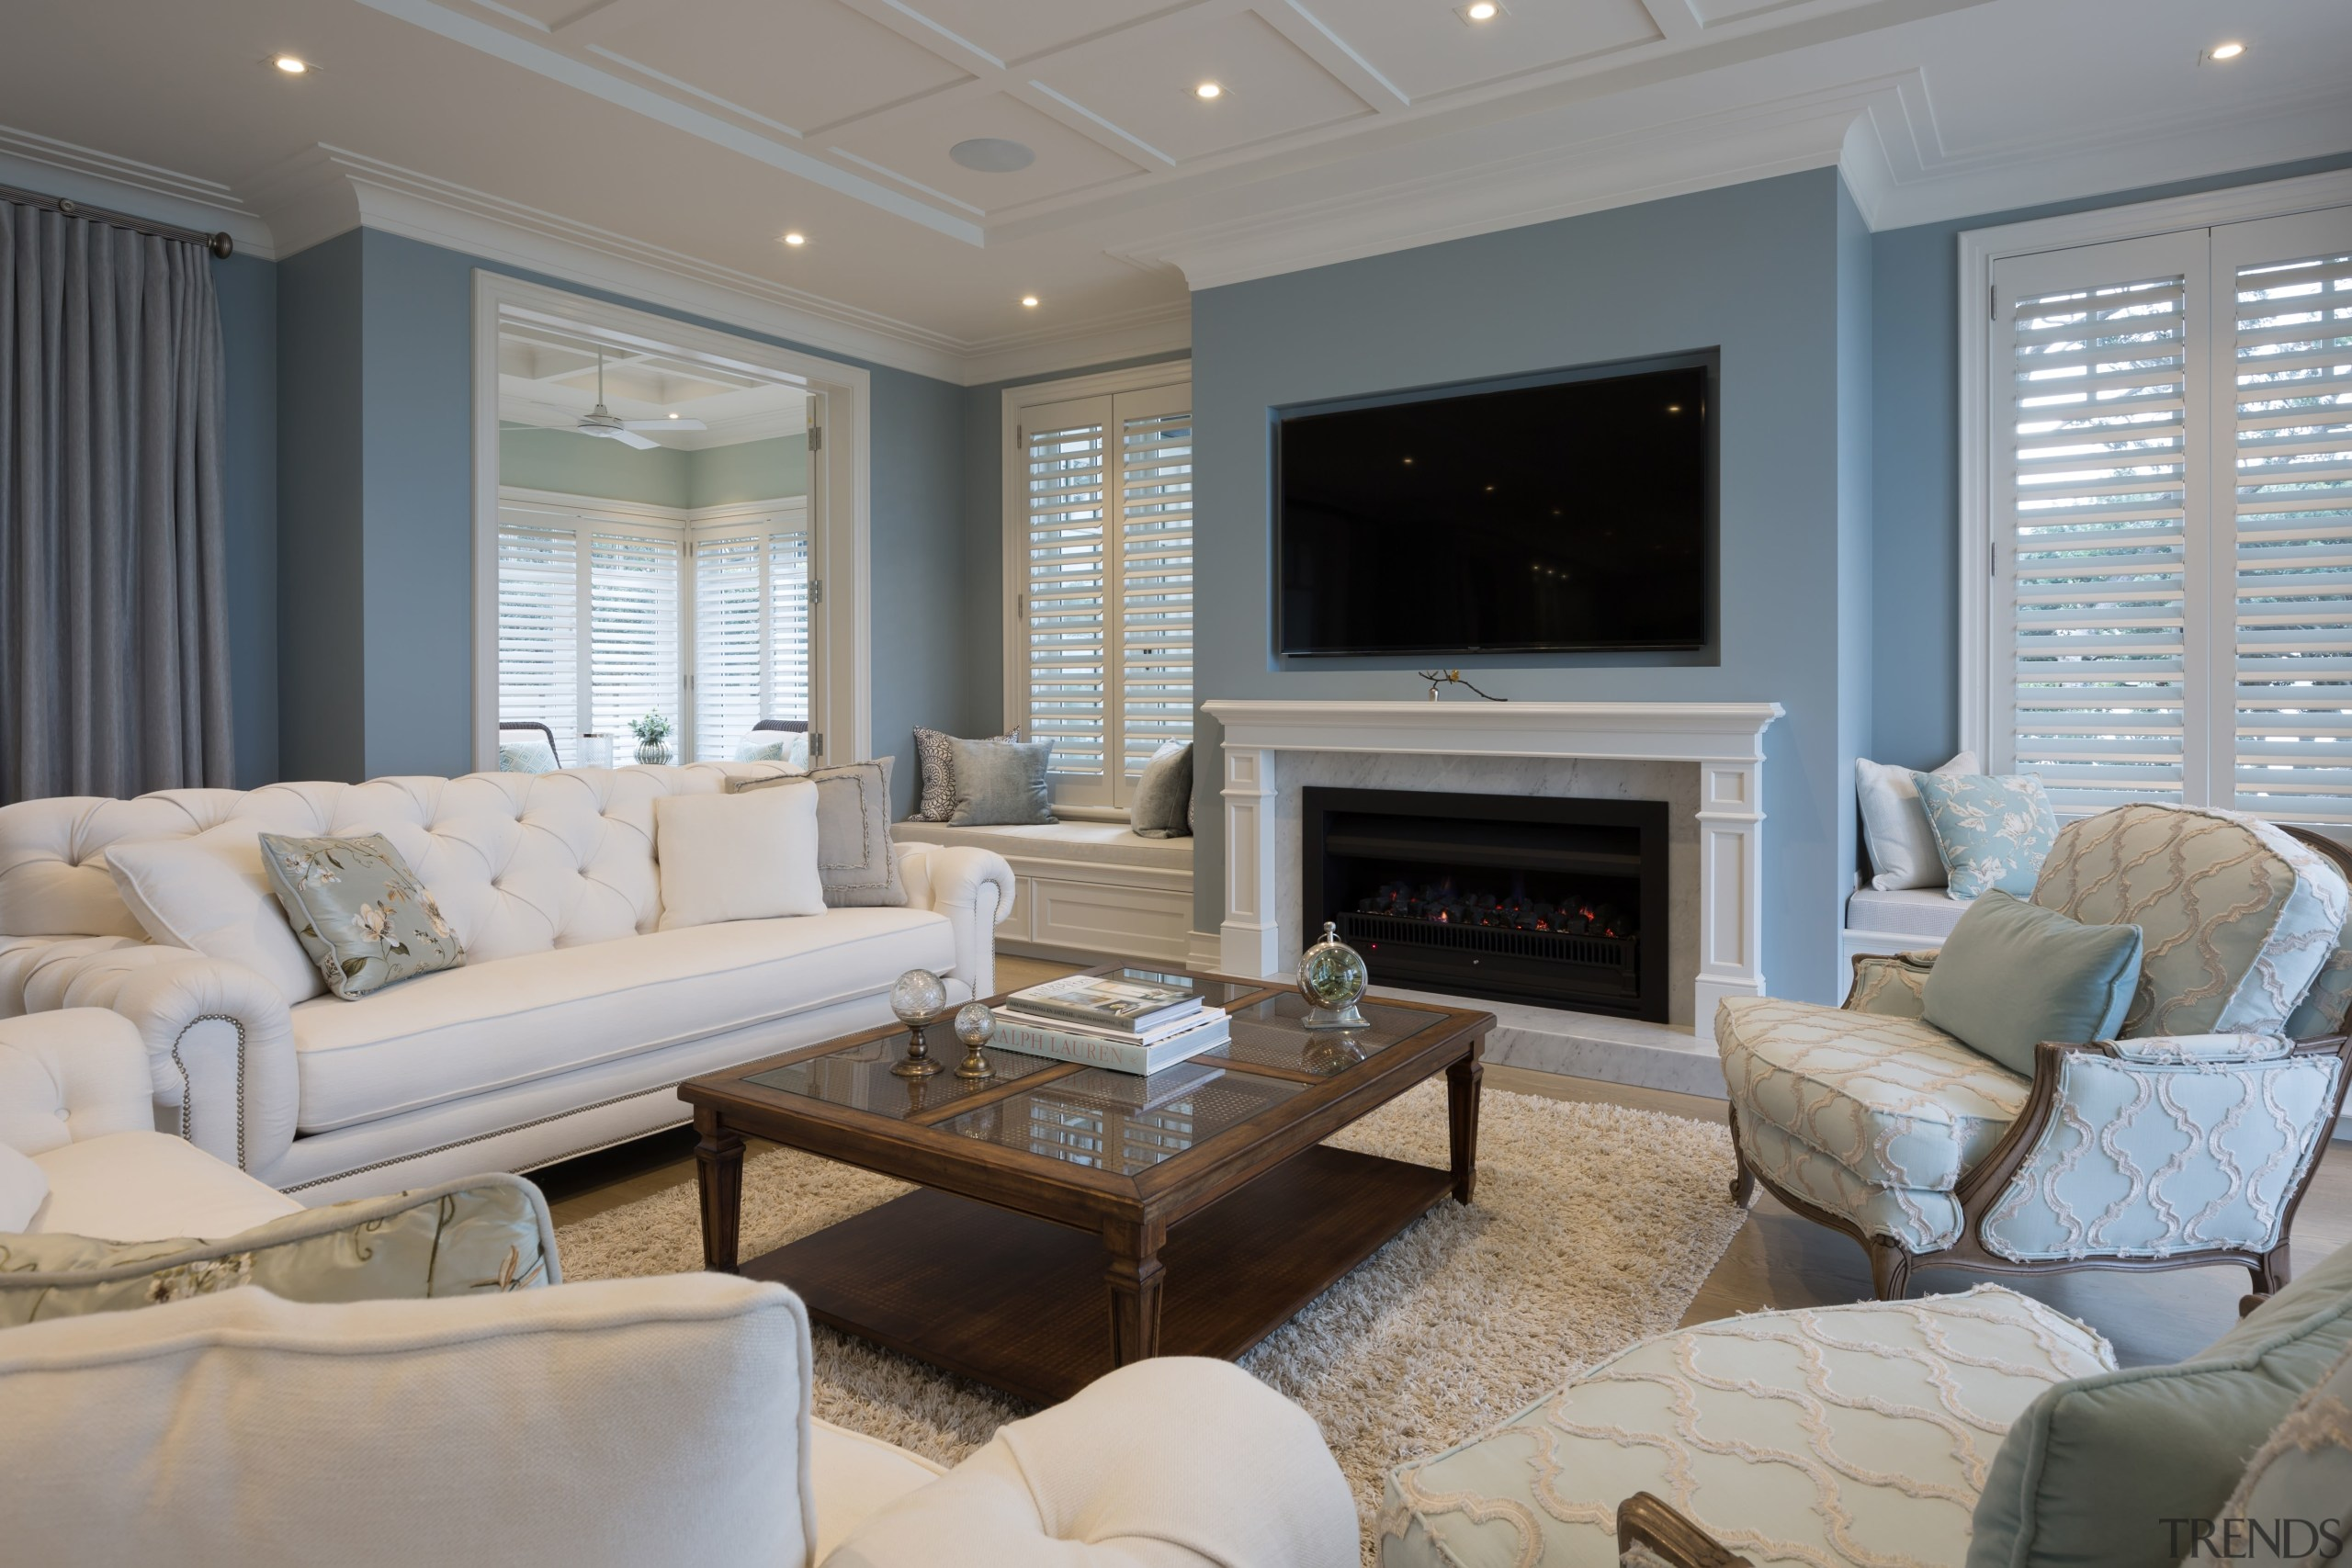 The television set is recessed above the fireplace home, interior design, living room, real estate, room, window, gray